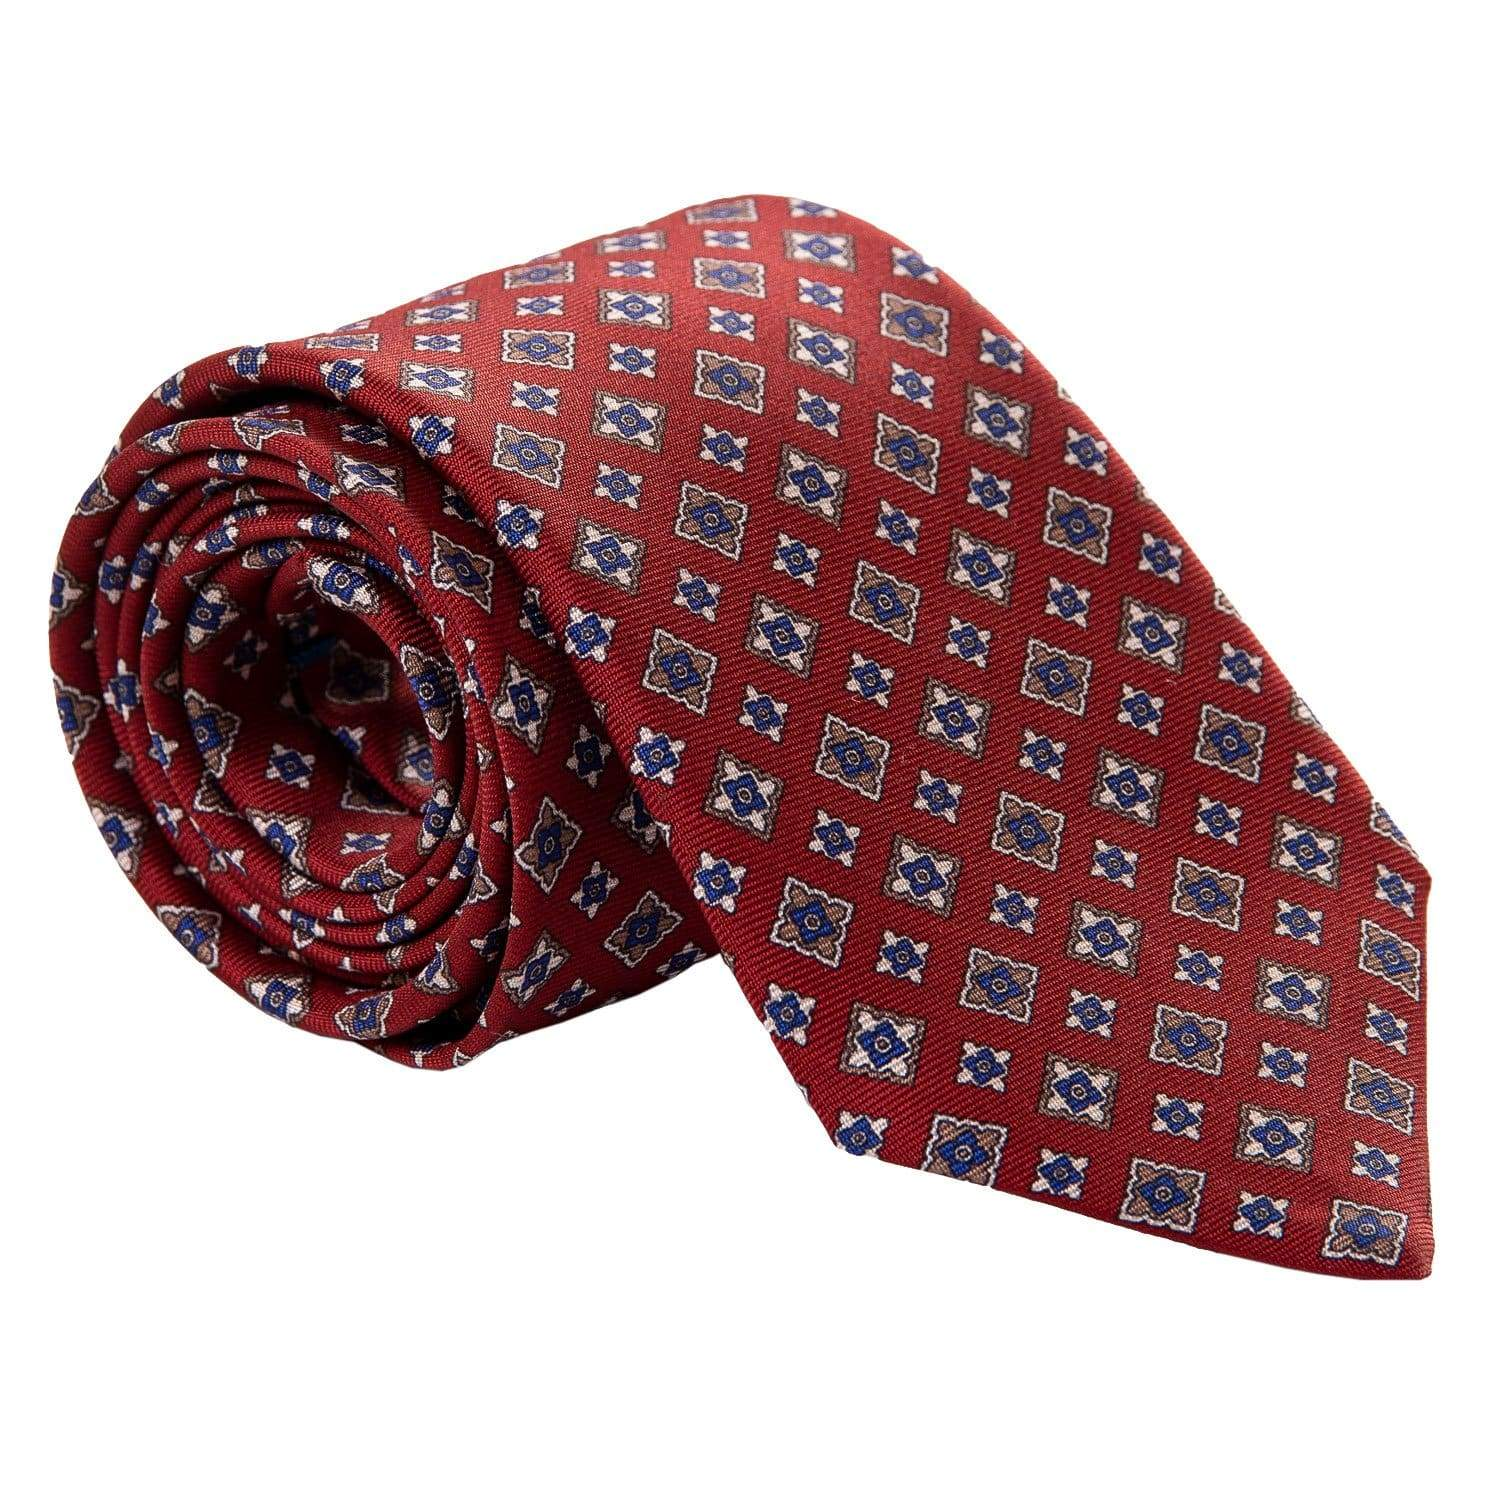 Hand-made silk tie from Italy